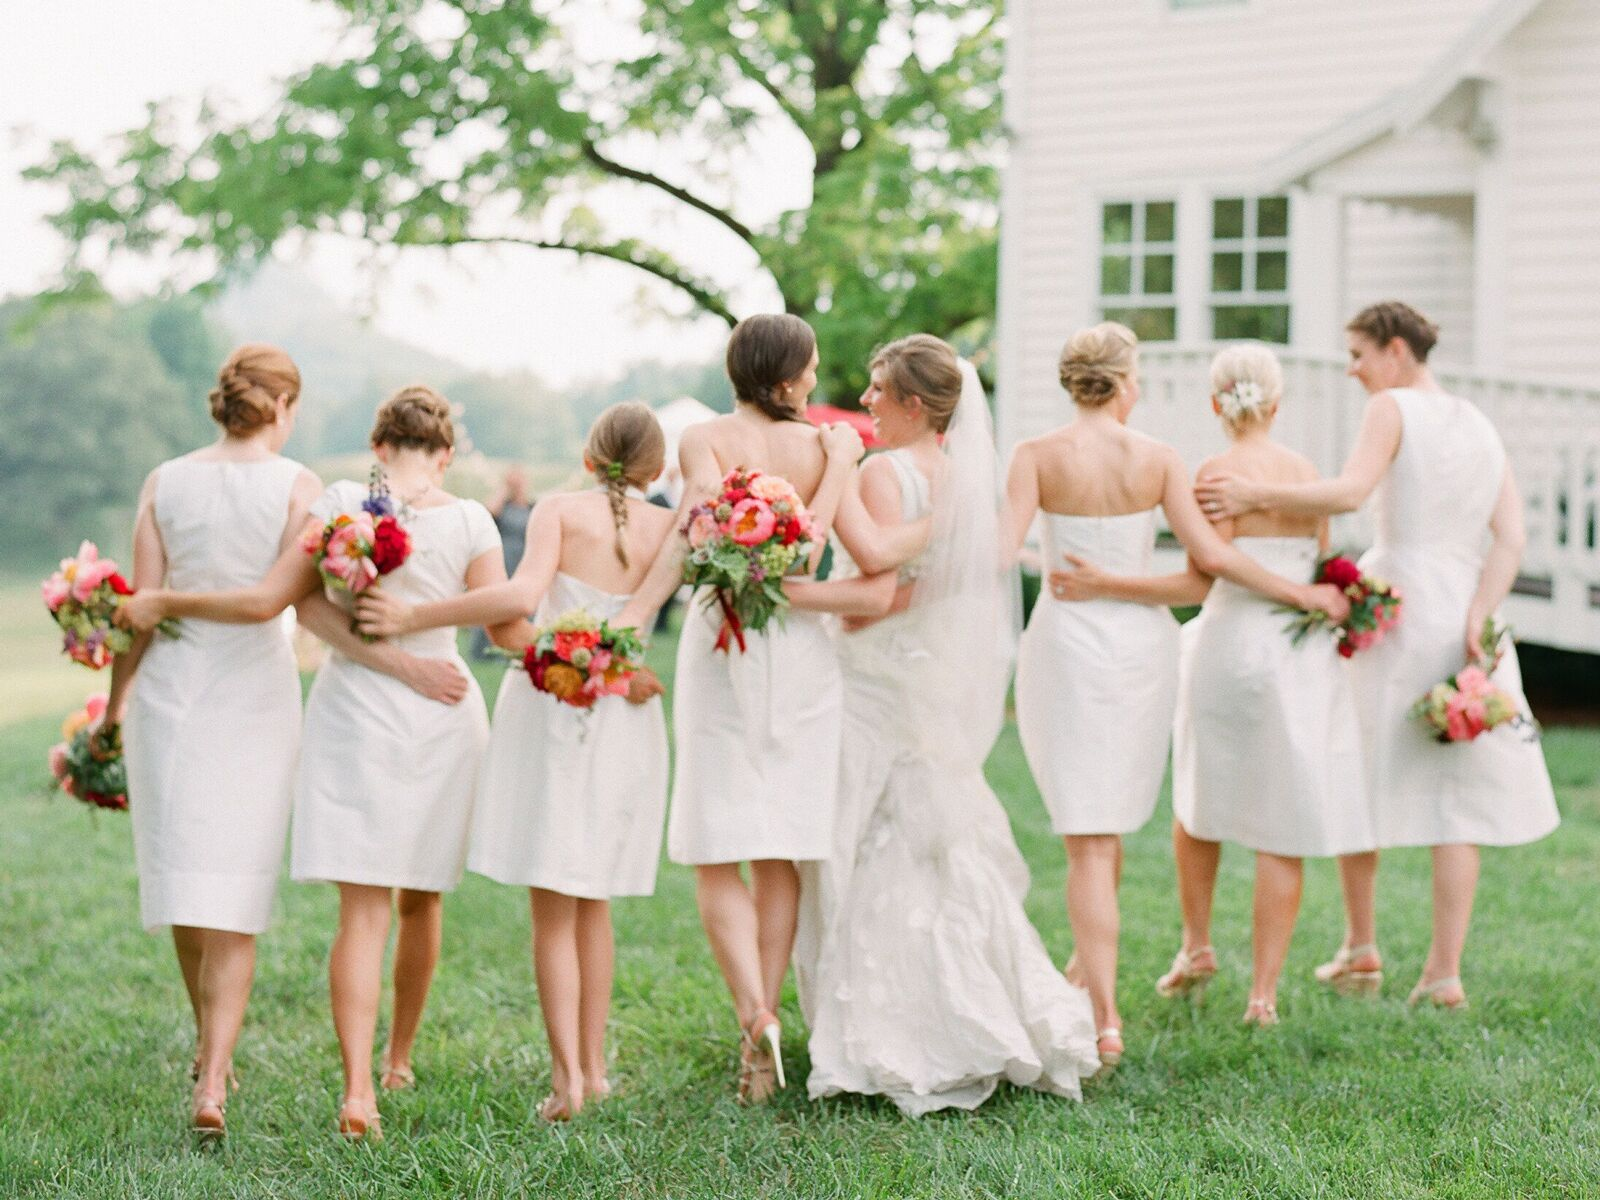 Do You Have To Have A Maid Of Honor